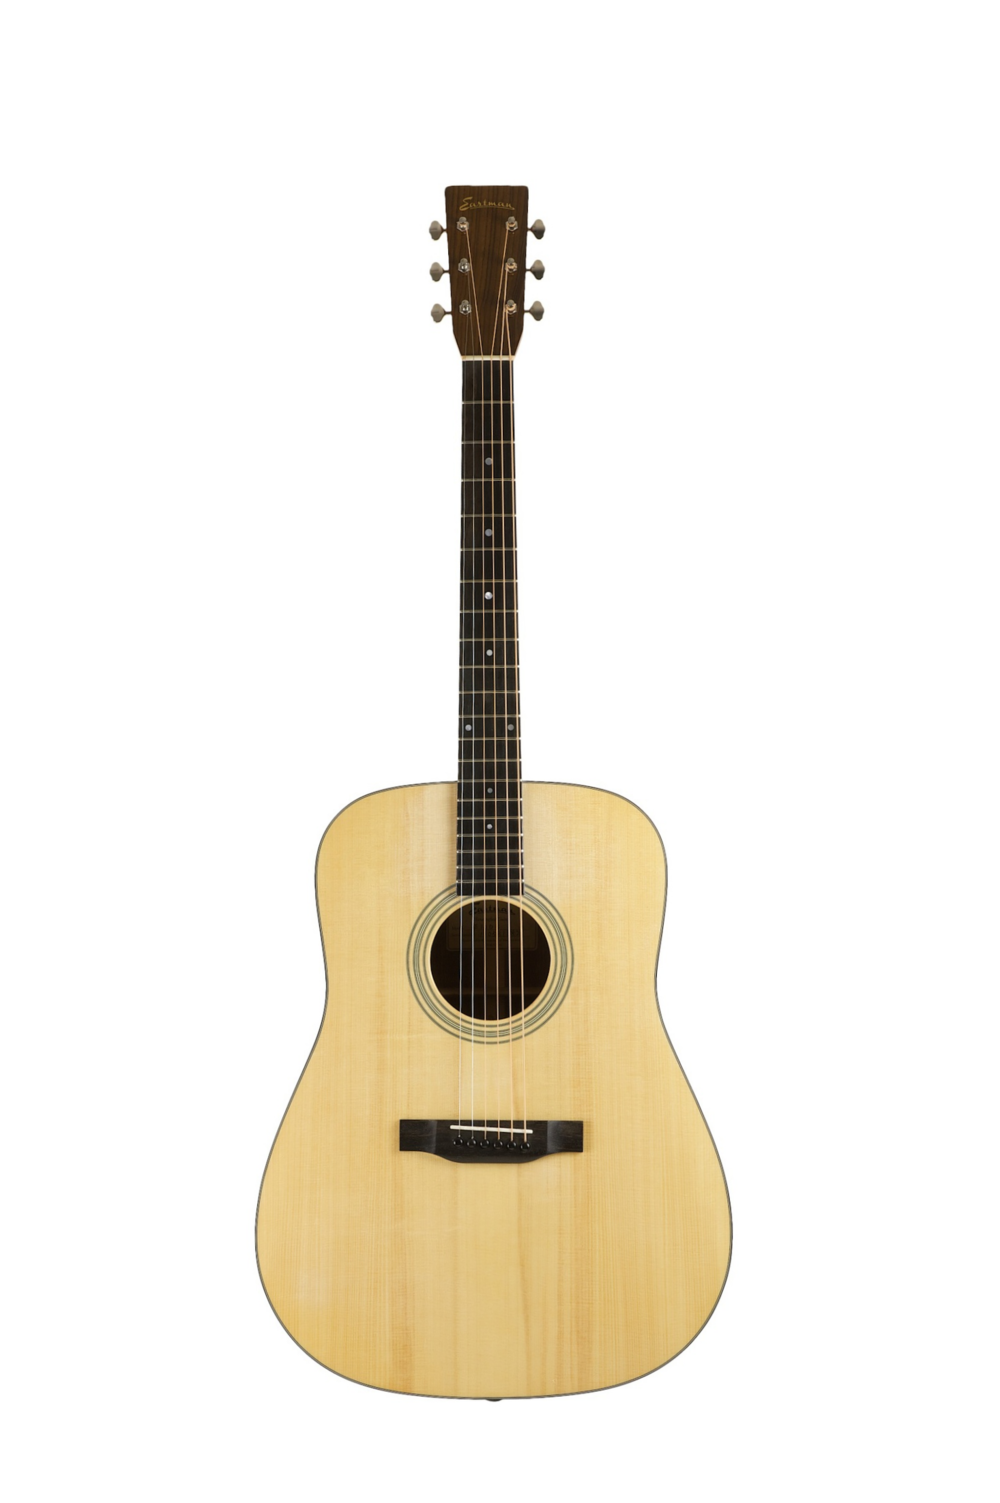 E10DL Suggested retail price: $1,375